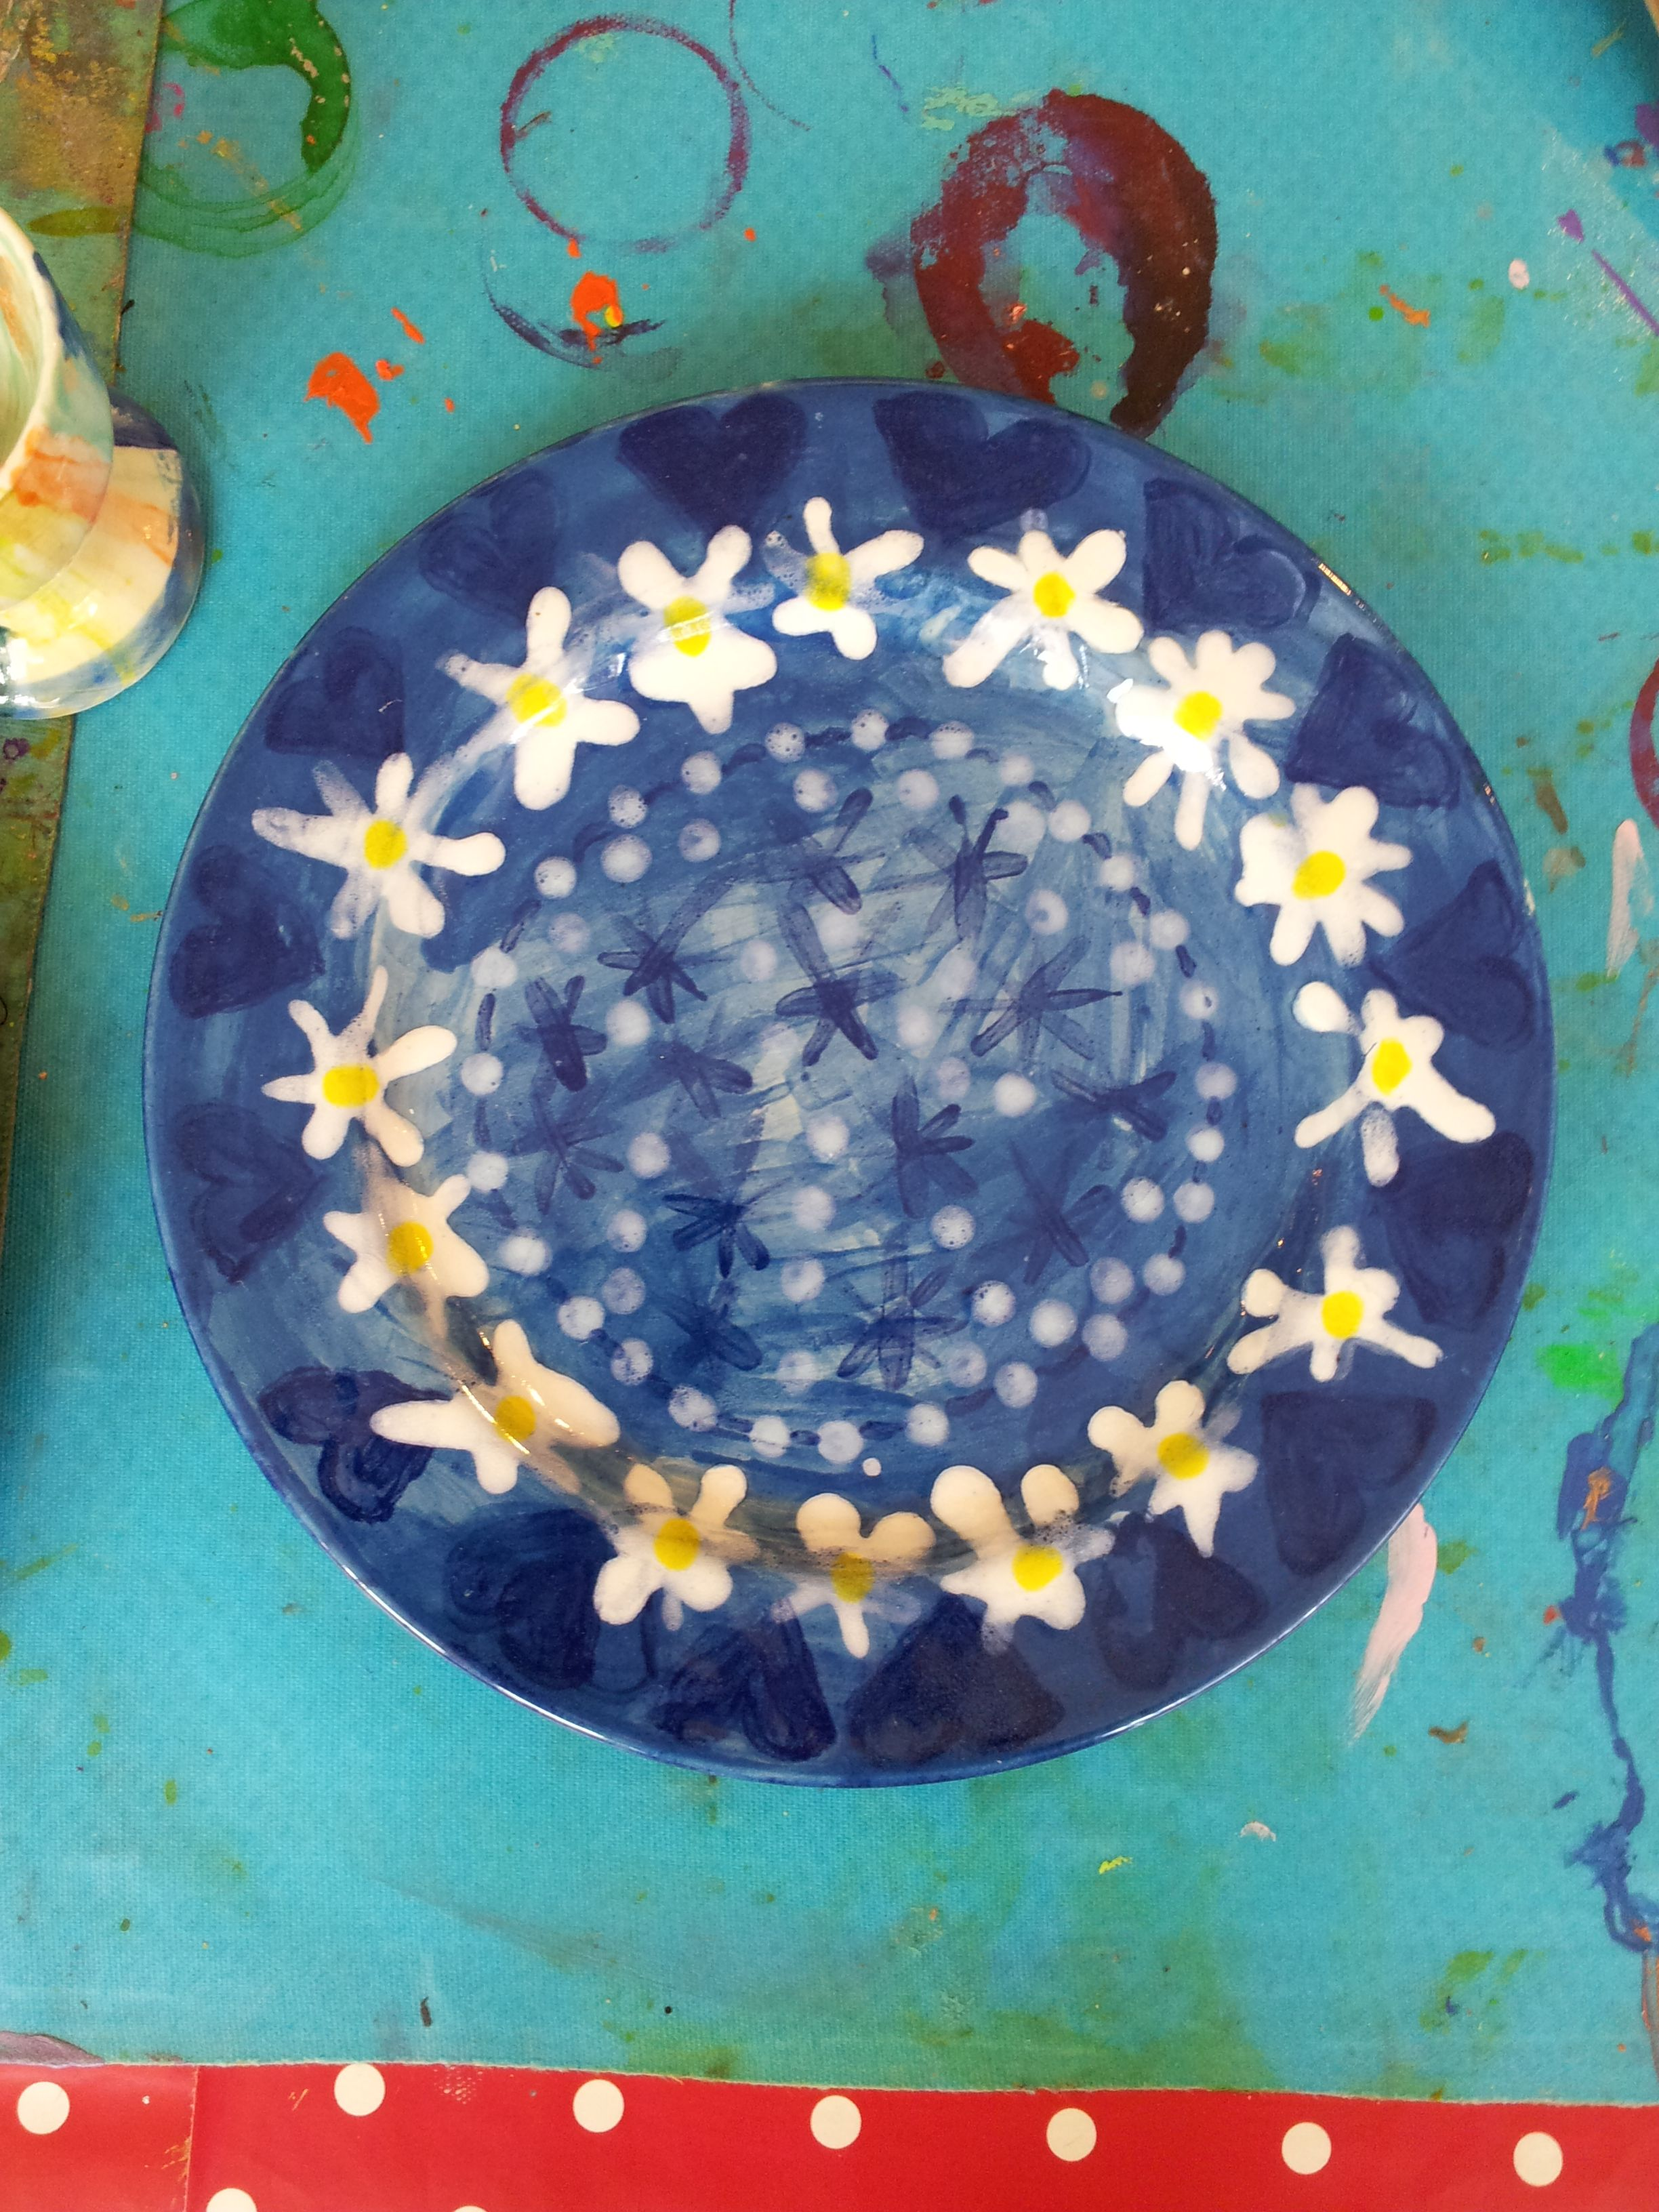 a pretty plate with a daisy pattern on it painted at Faux Arts in Marlborough, in a ceramic drop in